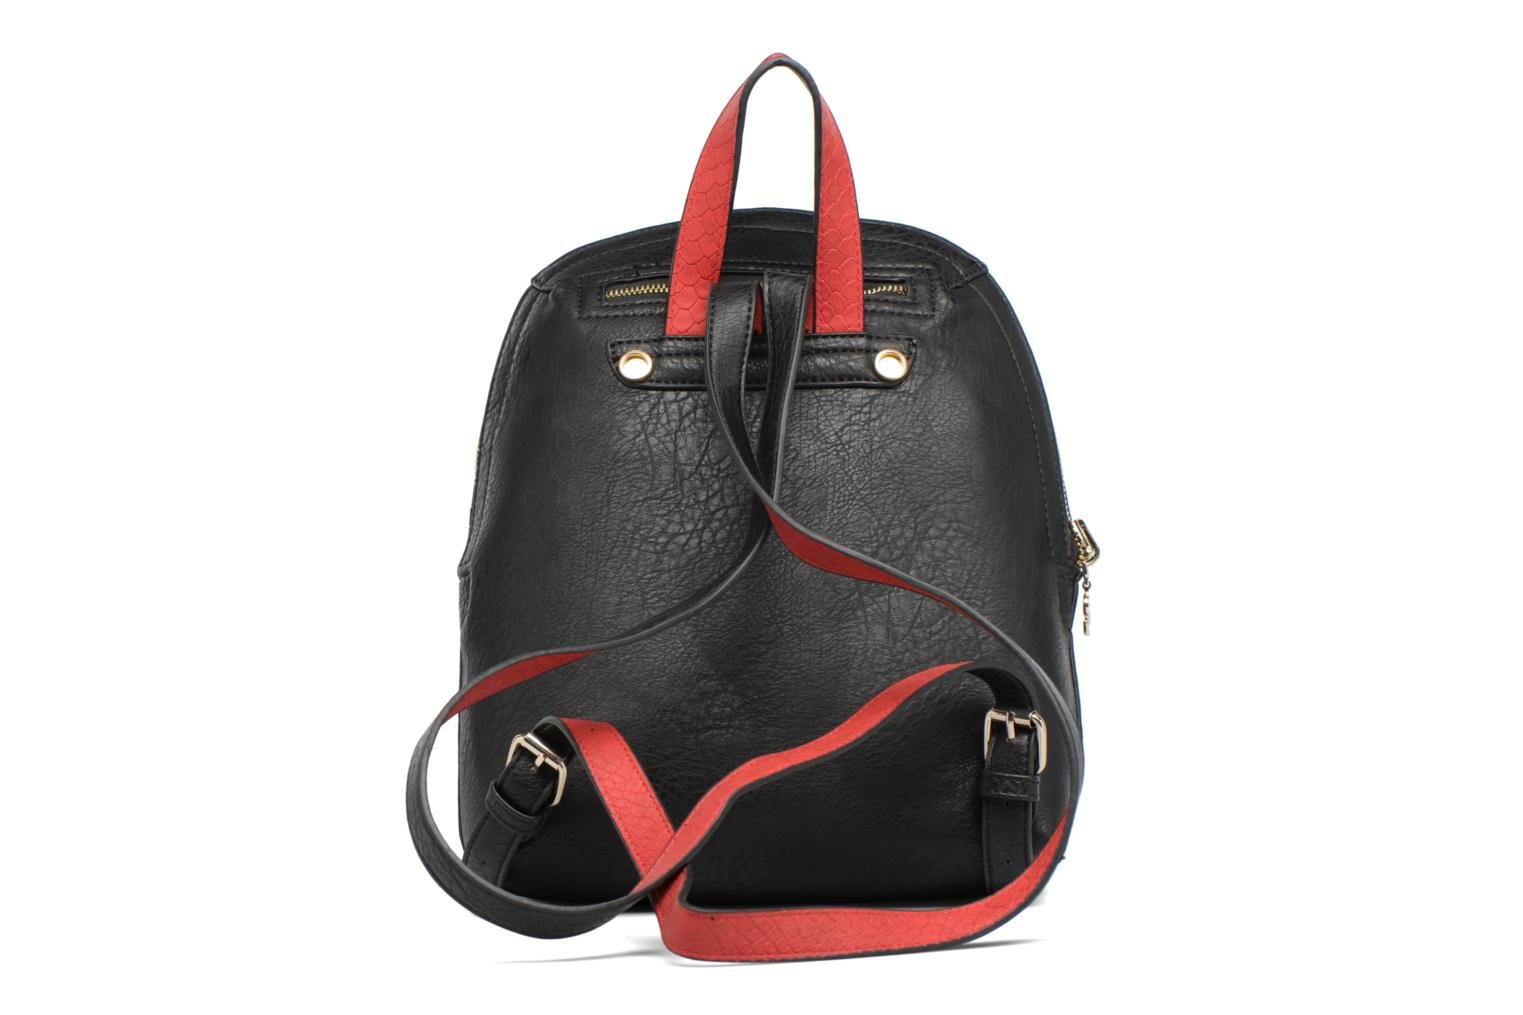 Madeira Cougar Backpack Negro